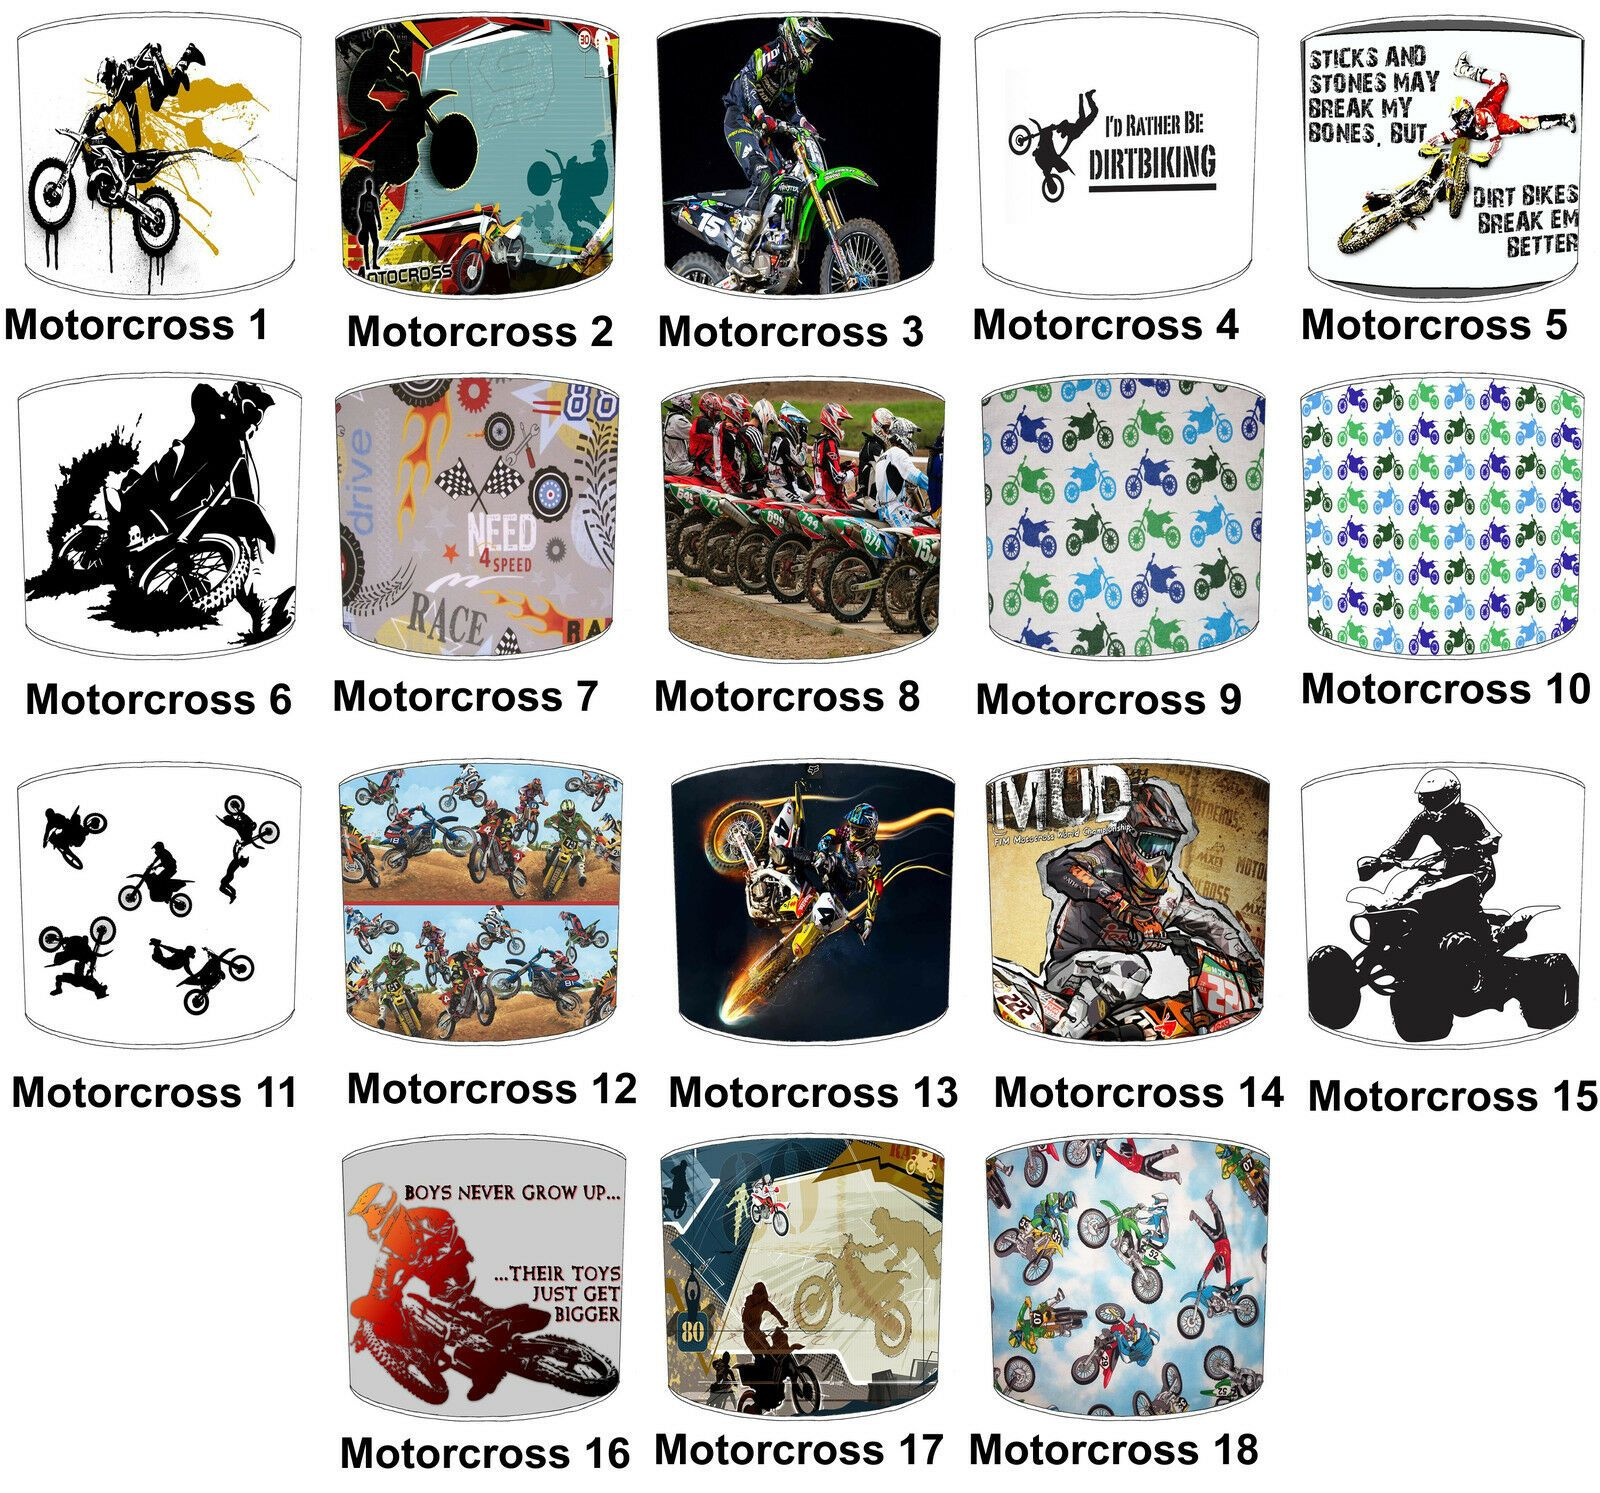 Details about Motocross Lampshades Ideal To Match